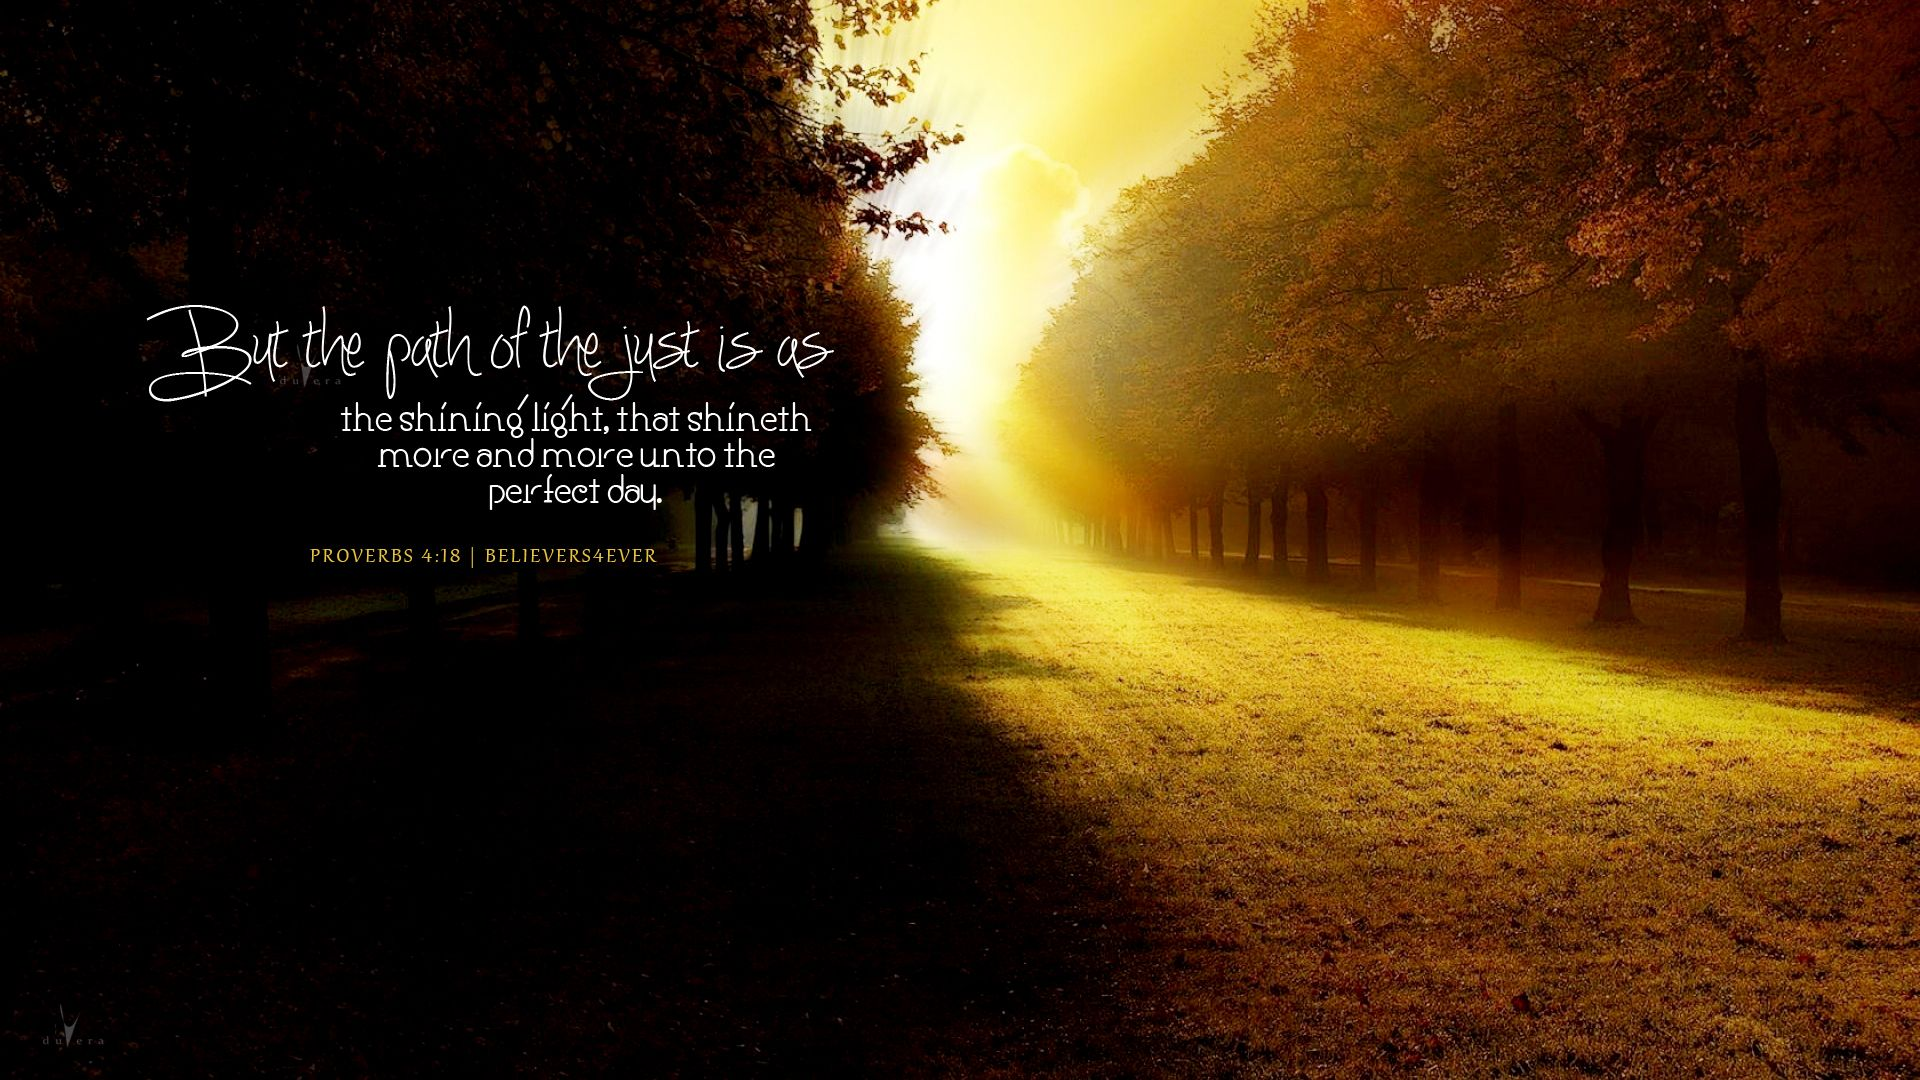 The path of the just Christian desktop wallpaper from